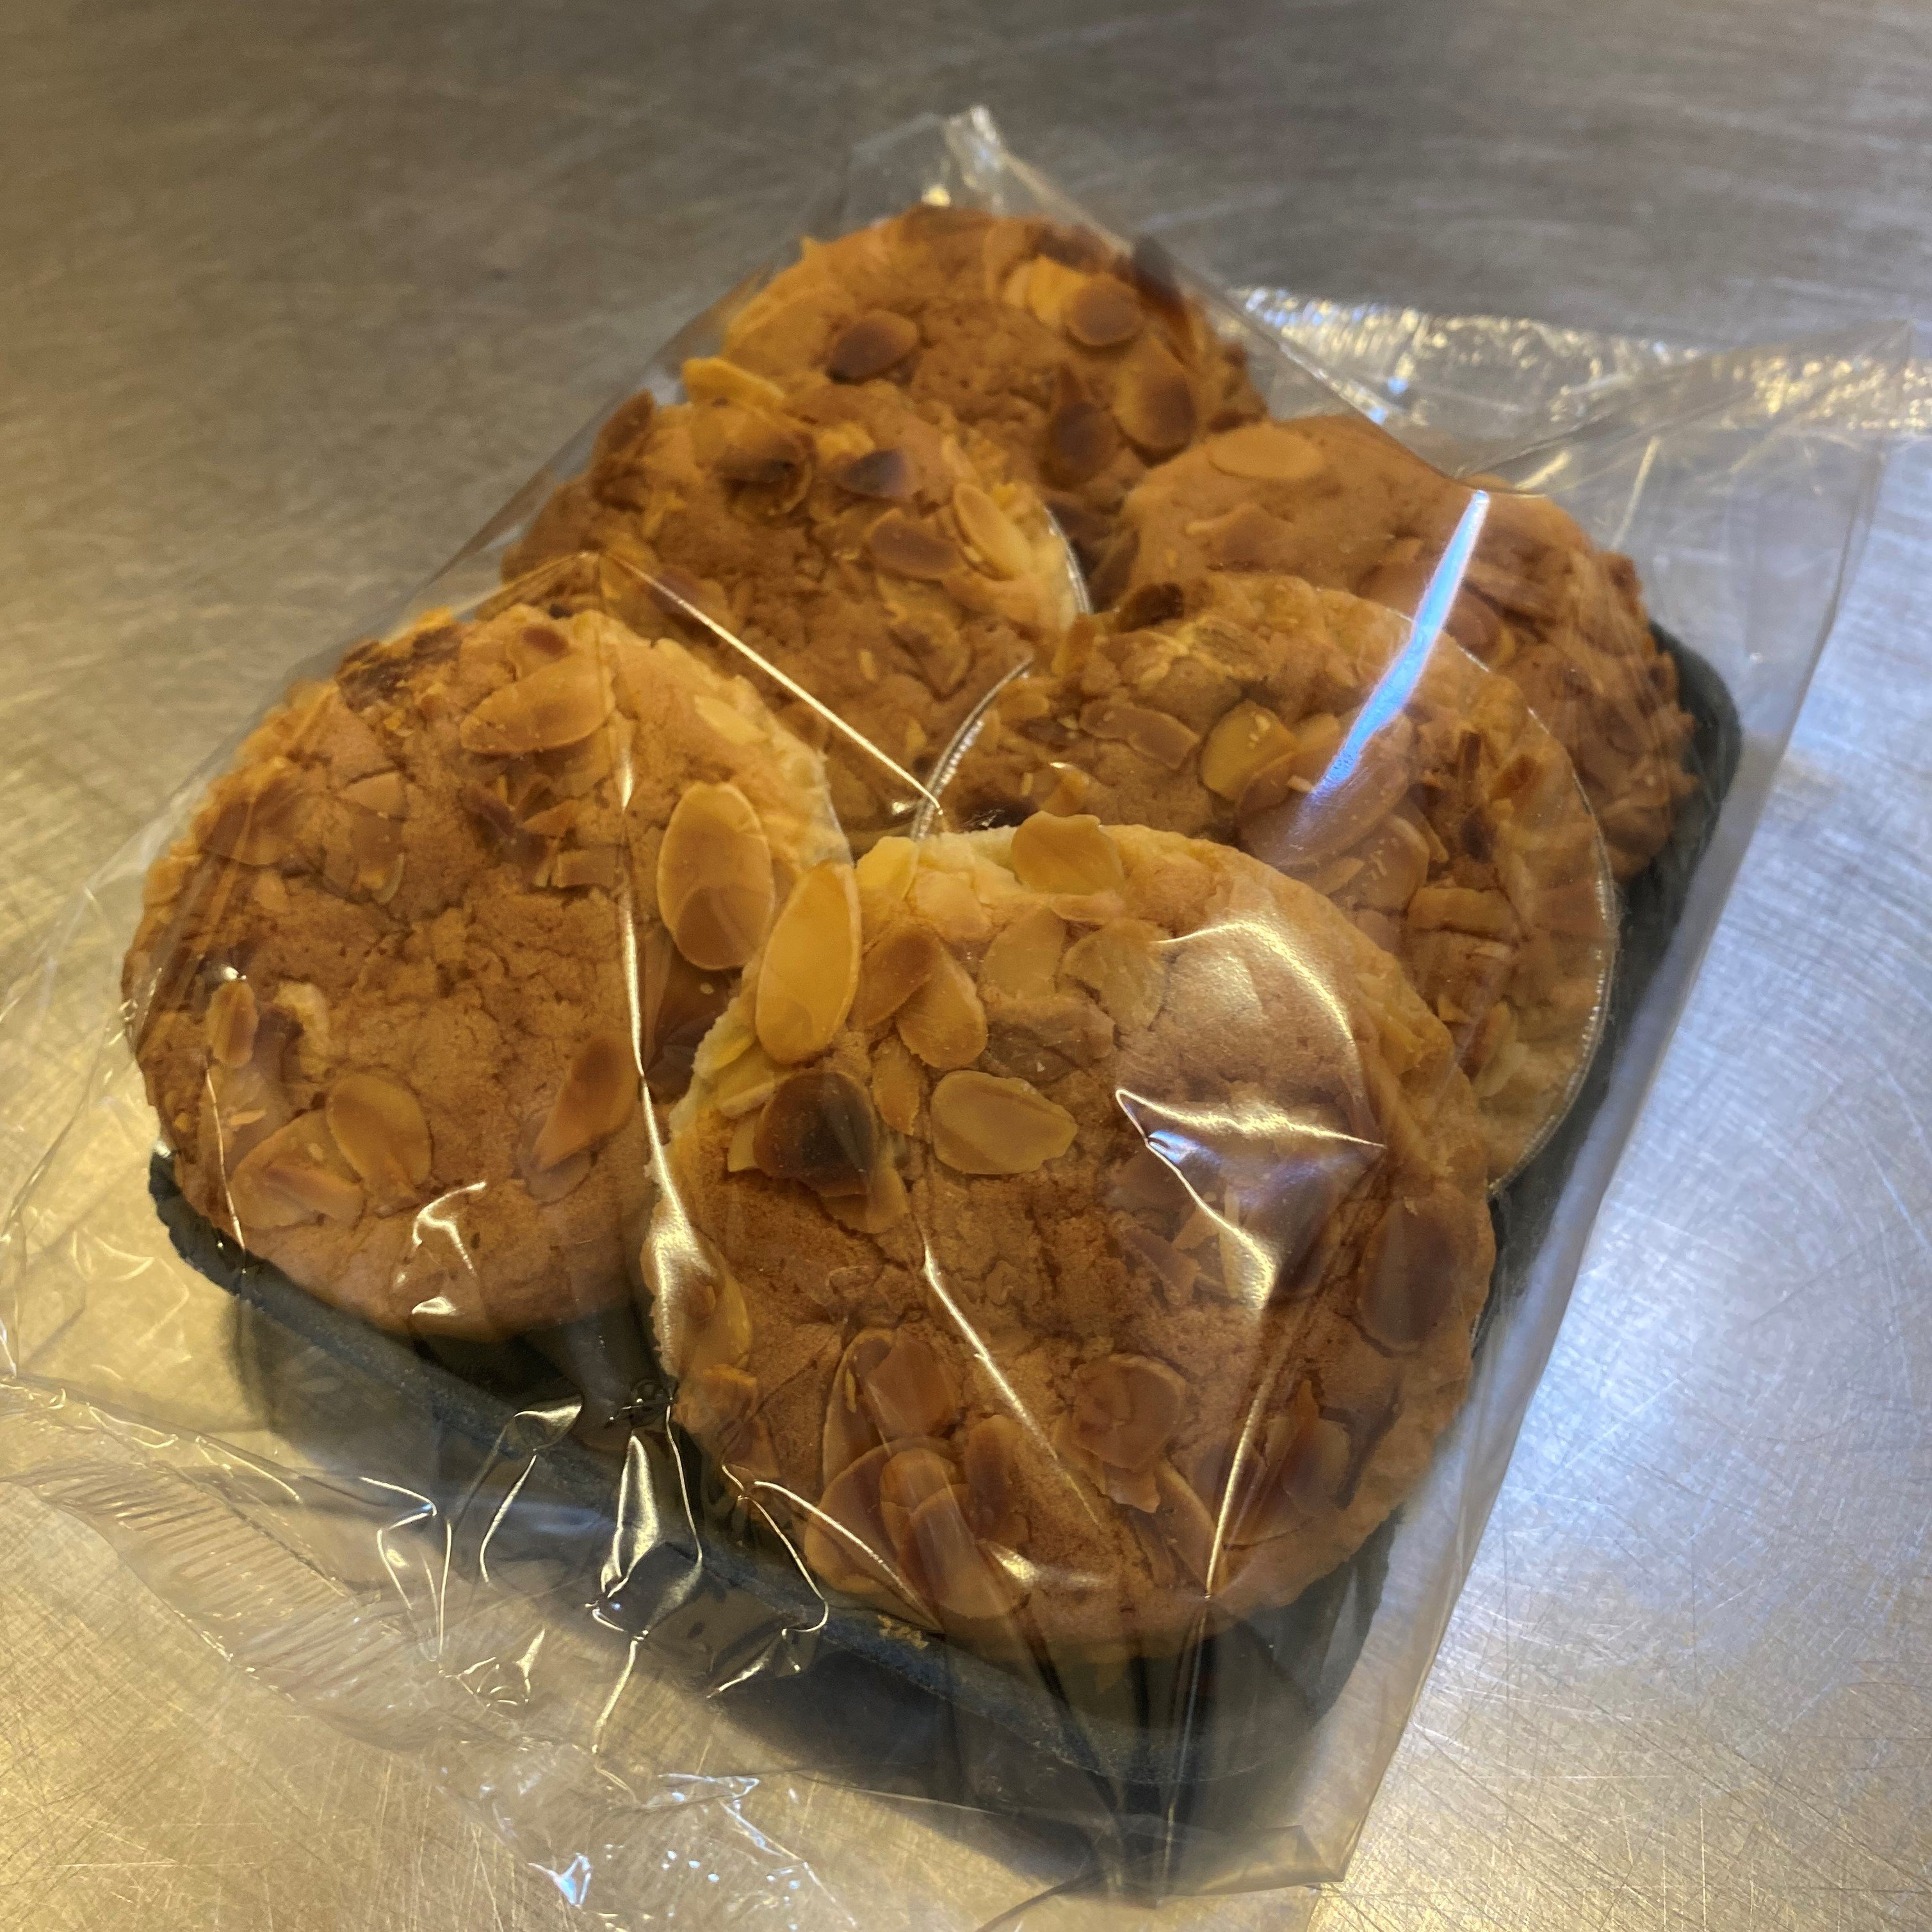 Small nutty Bakewell (pack of 6) - £2.50